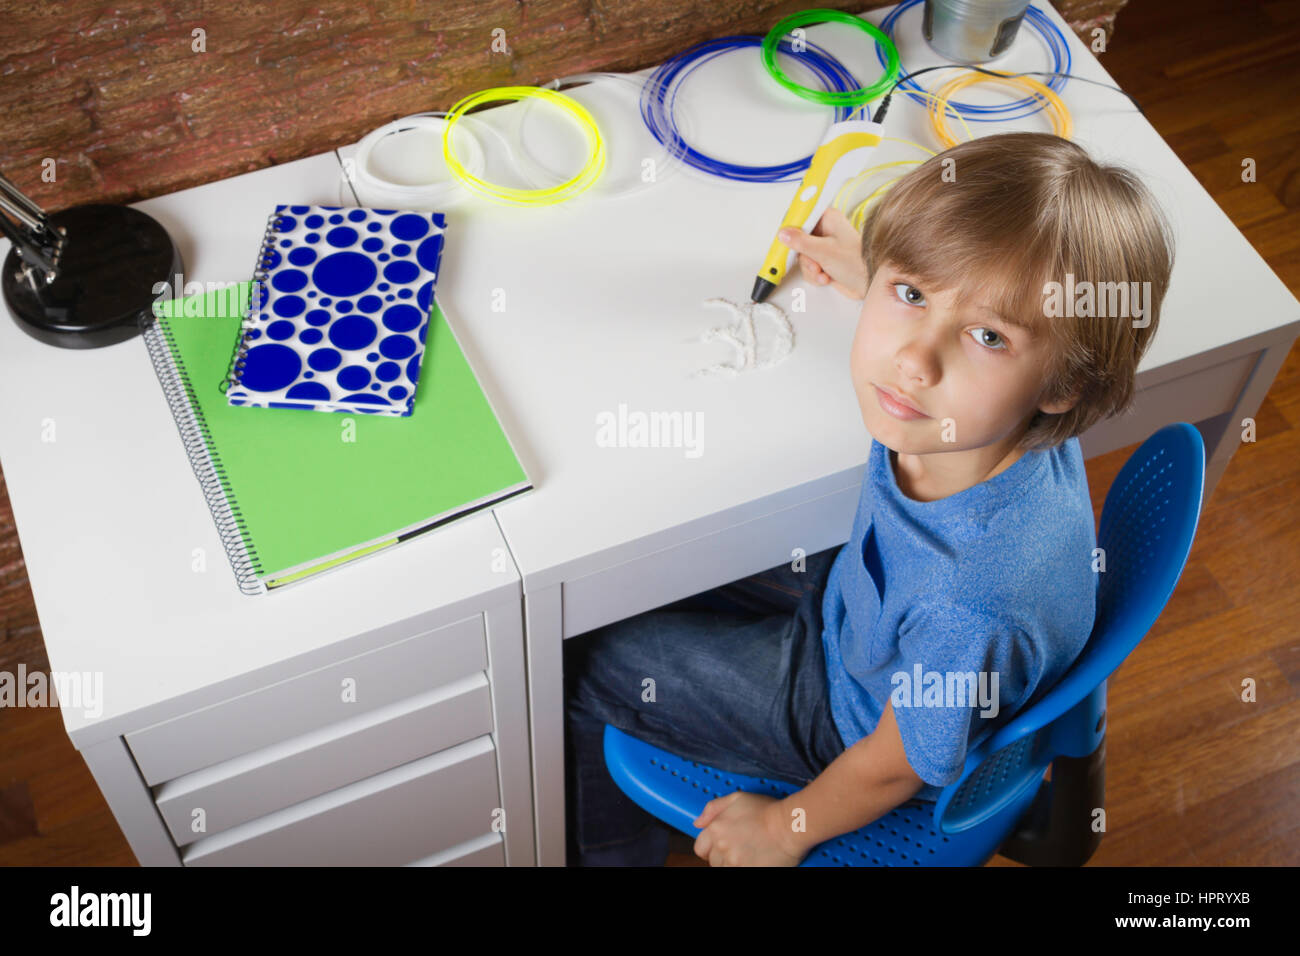 Child drawing with 3D printing pen. Boy making new item. Creative, technology, leisure, education concept - Stock Image